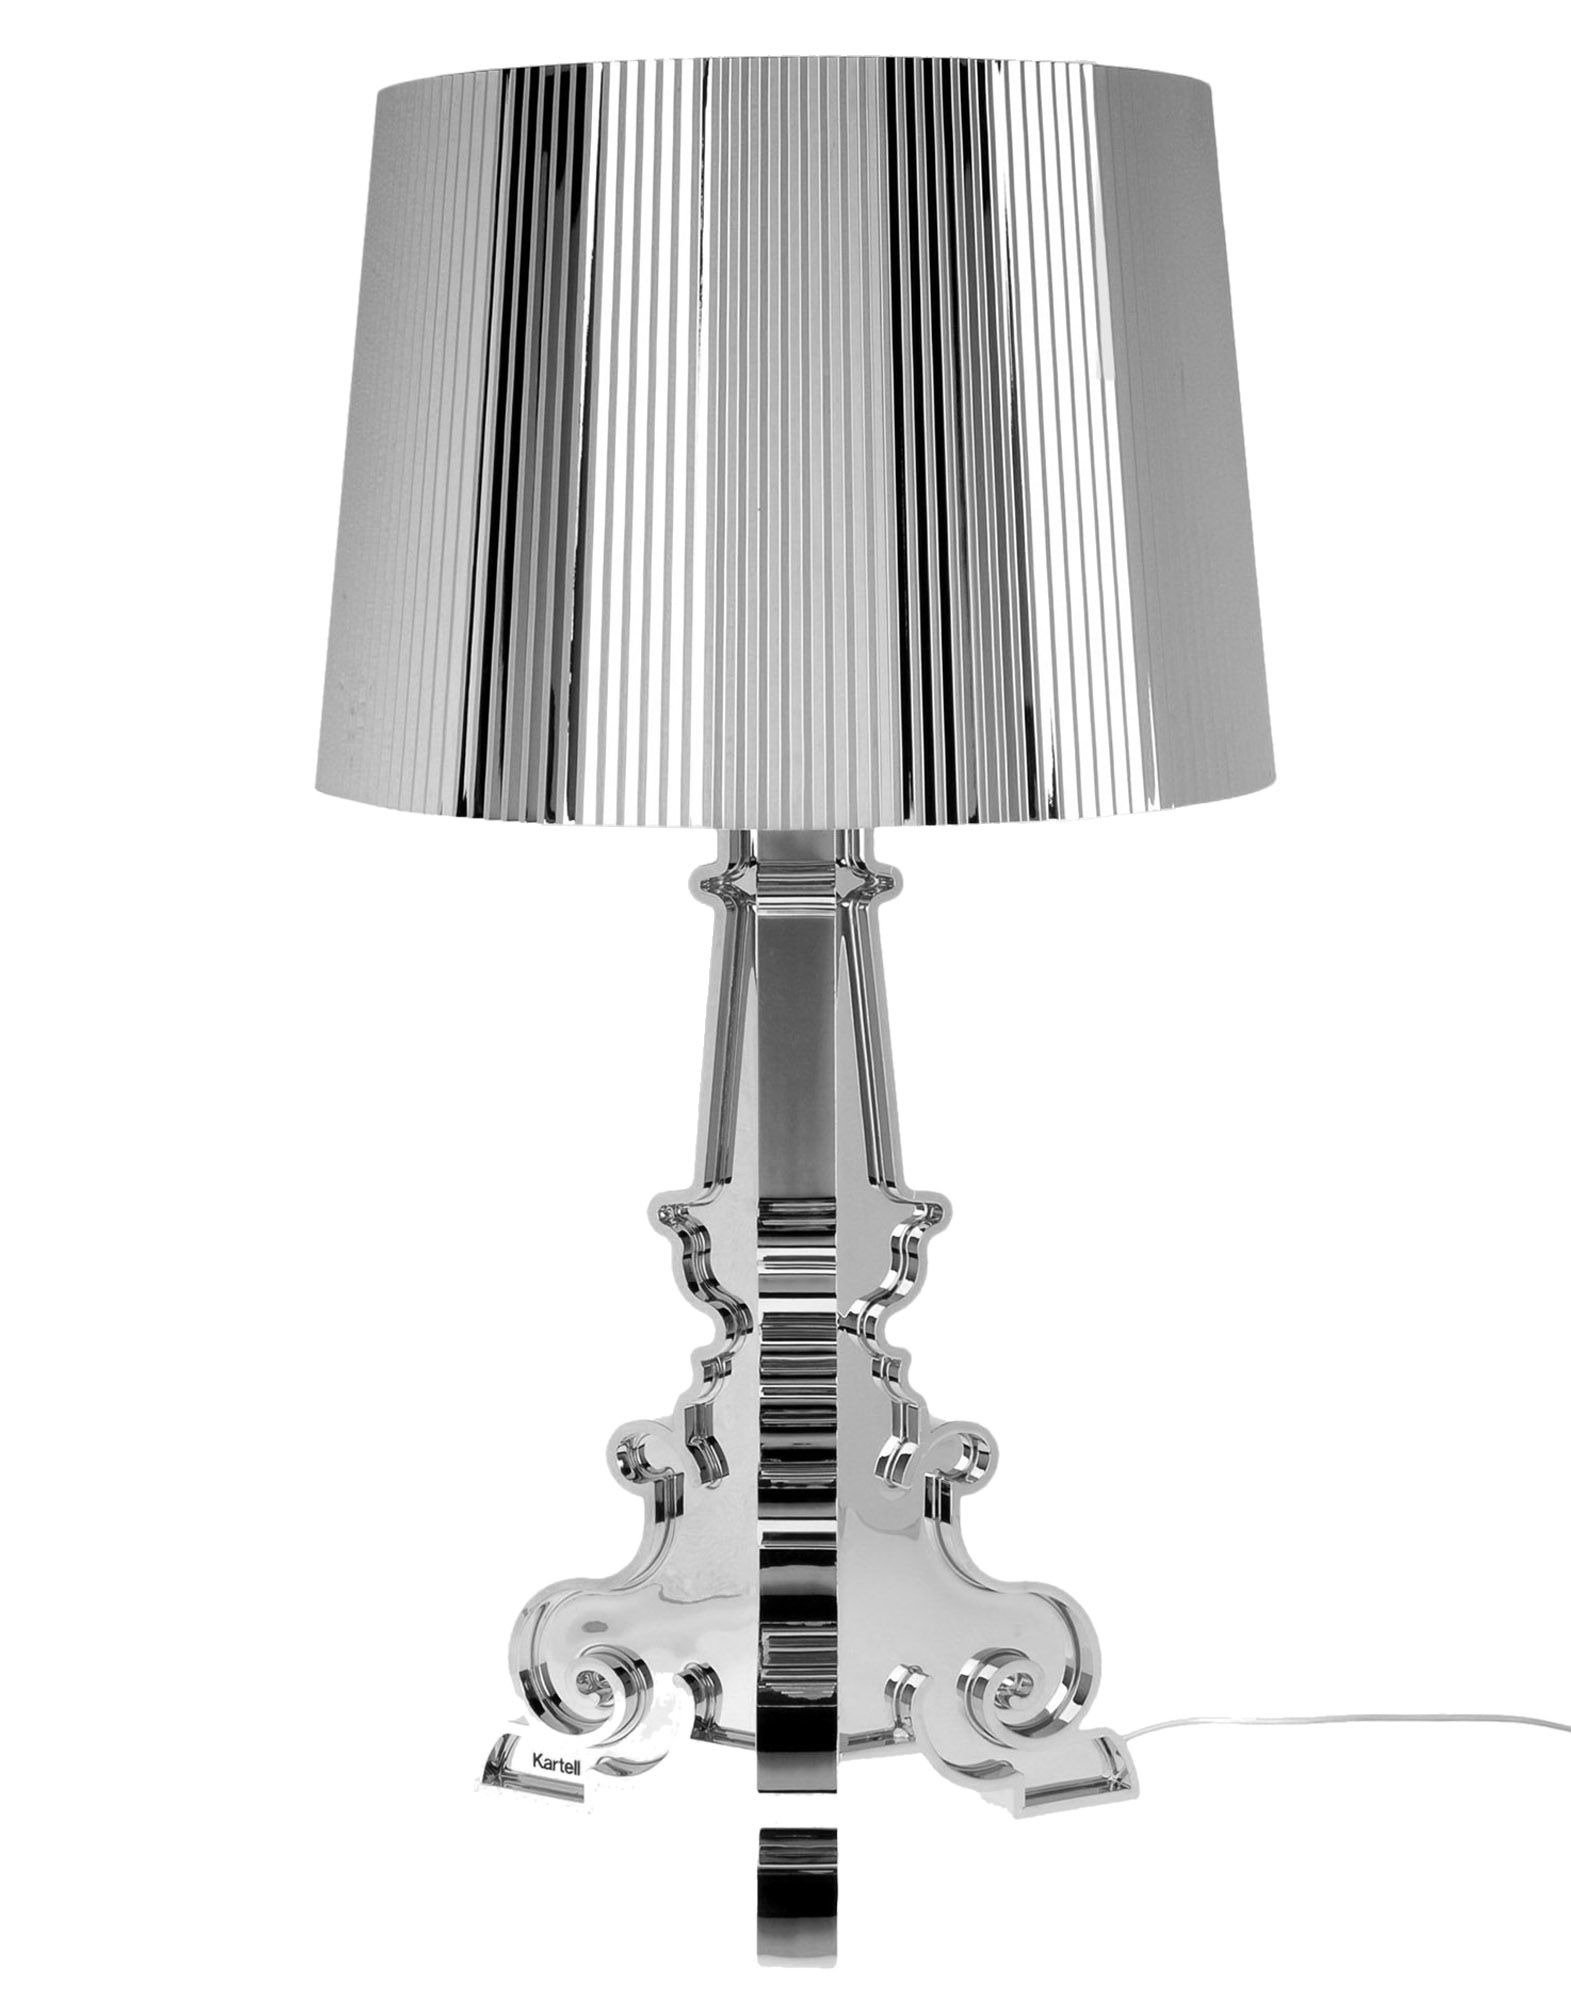 KARTELL Настольная лампа magnifica luce nordic creative personality bedroom lights after the modern minimalist study lamp warm living room led36w mf2017b